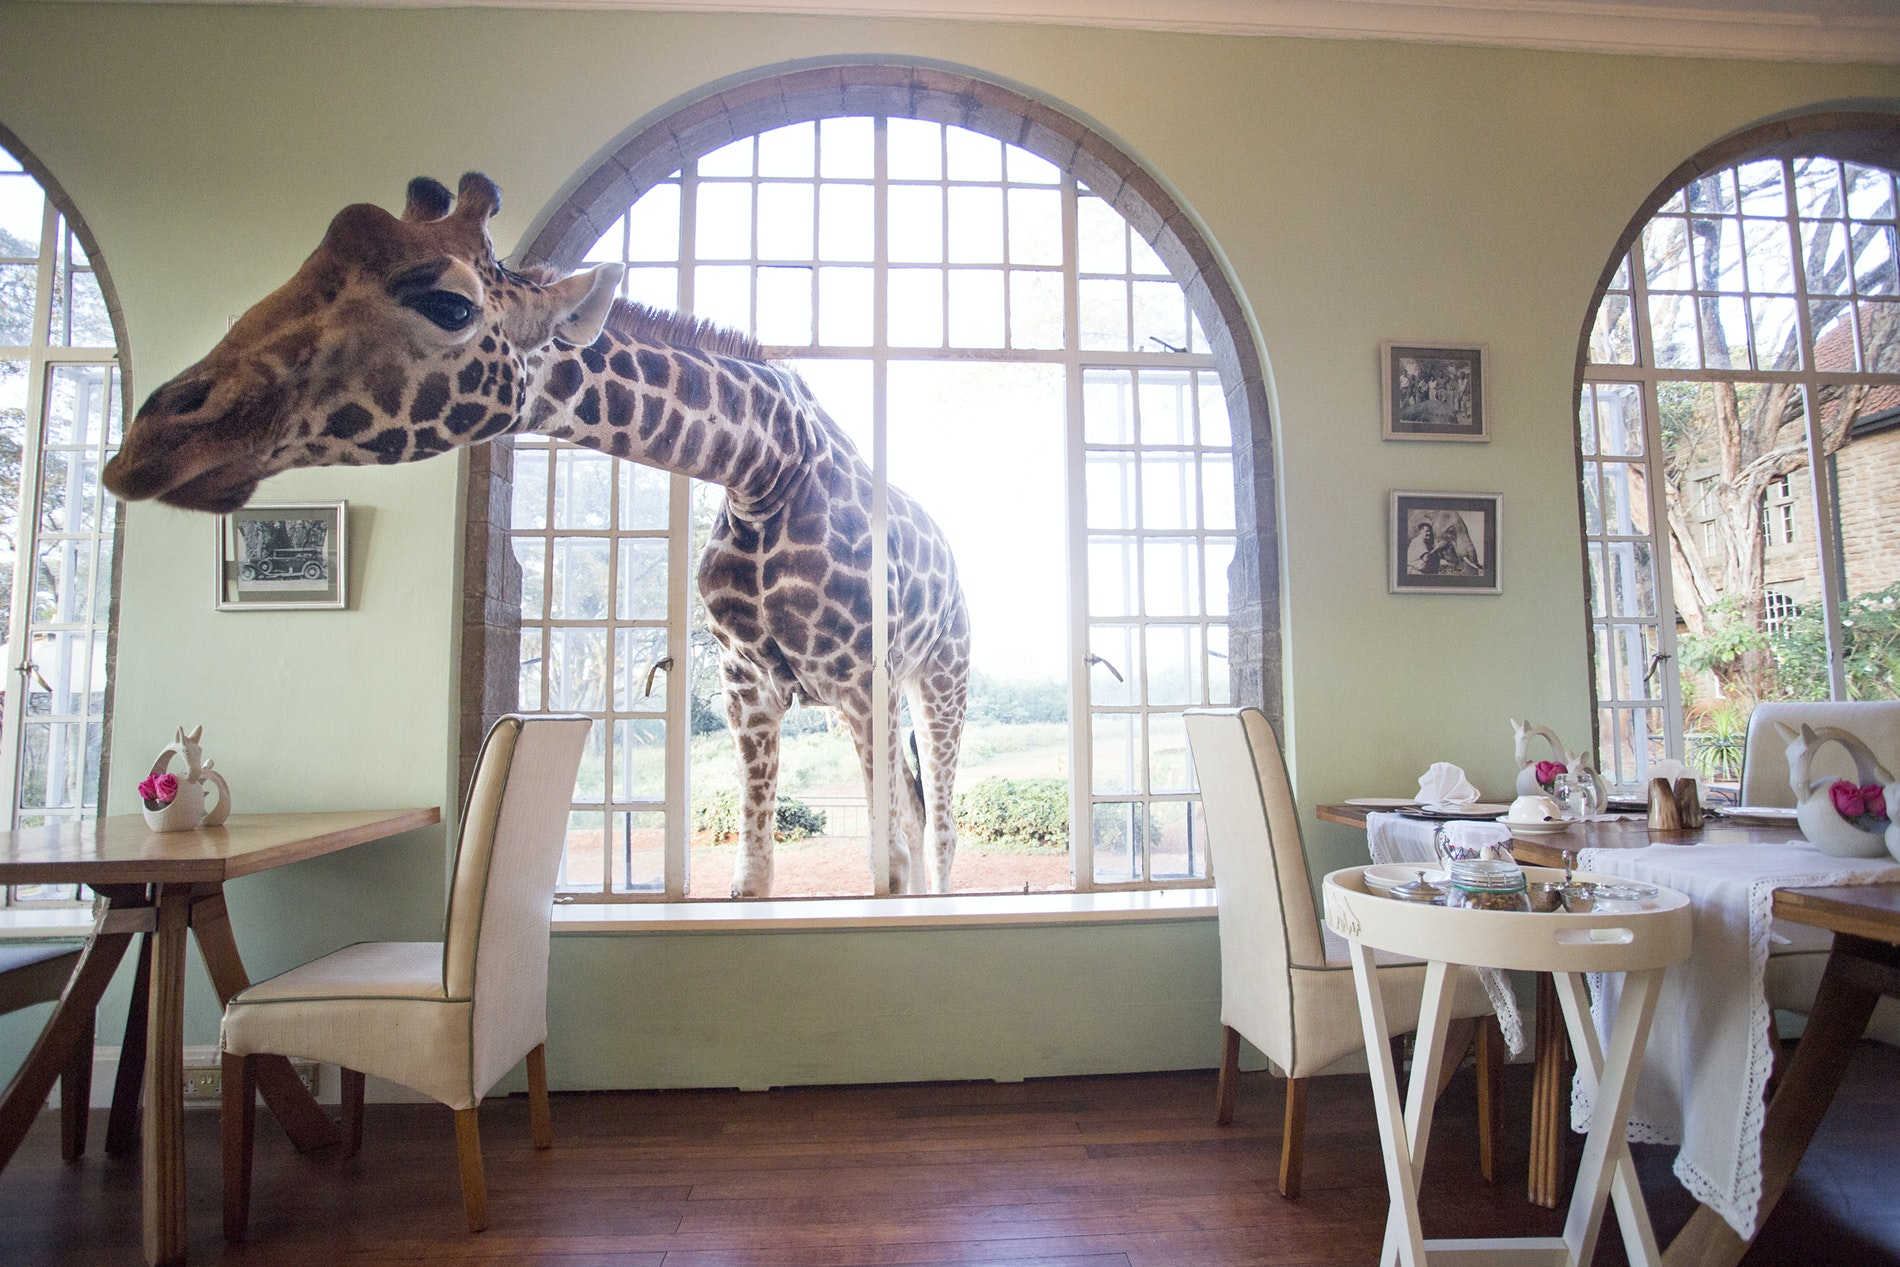 In the suburbs of Nairobi, the giraffes at Giraffe Manor often make appearances at breakfast time.